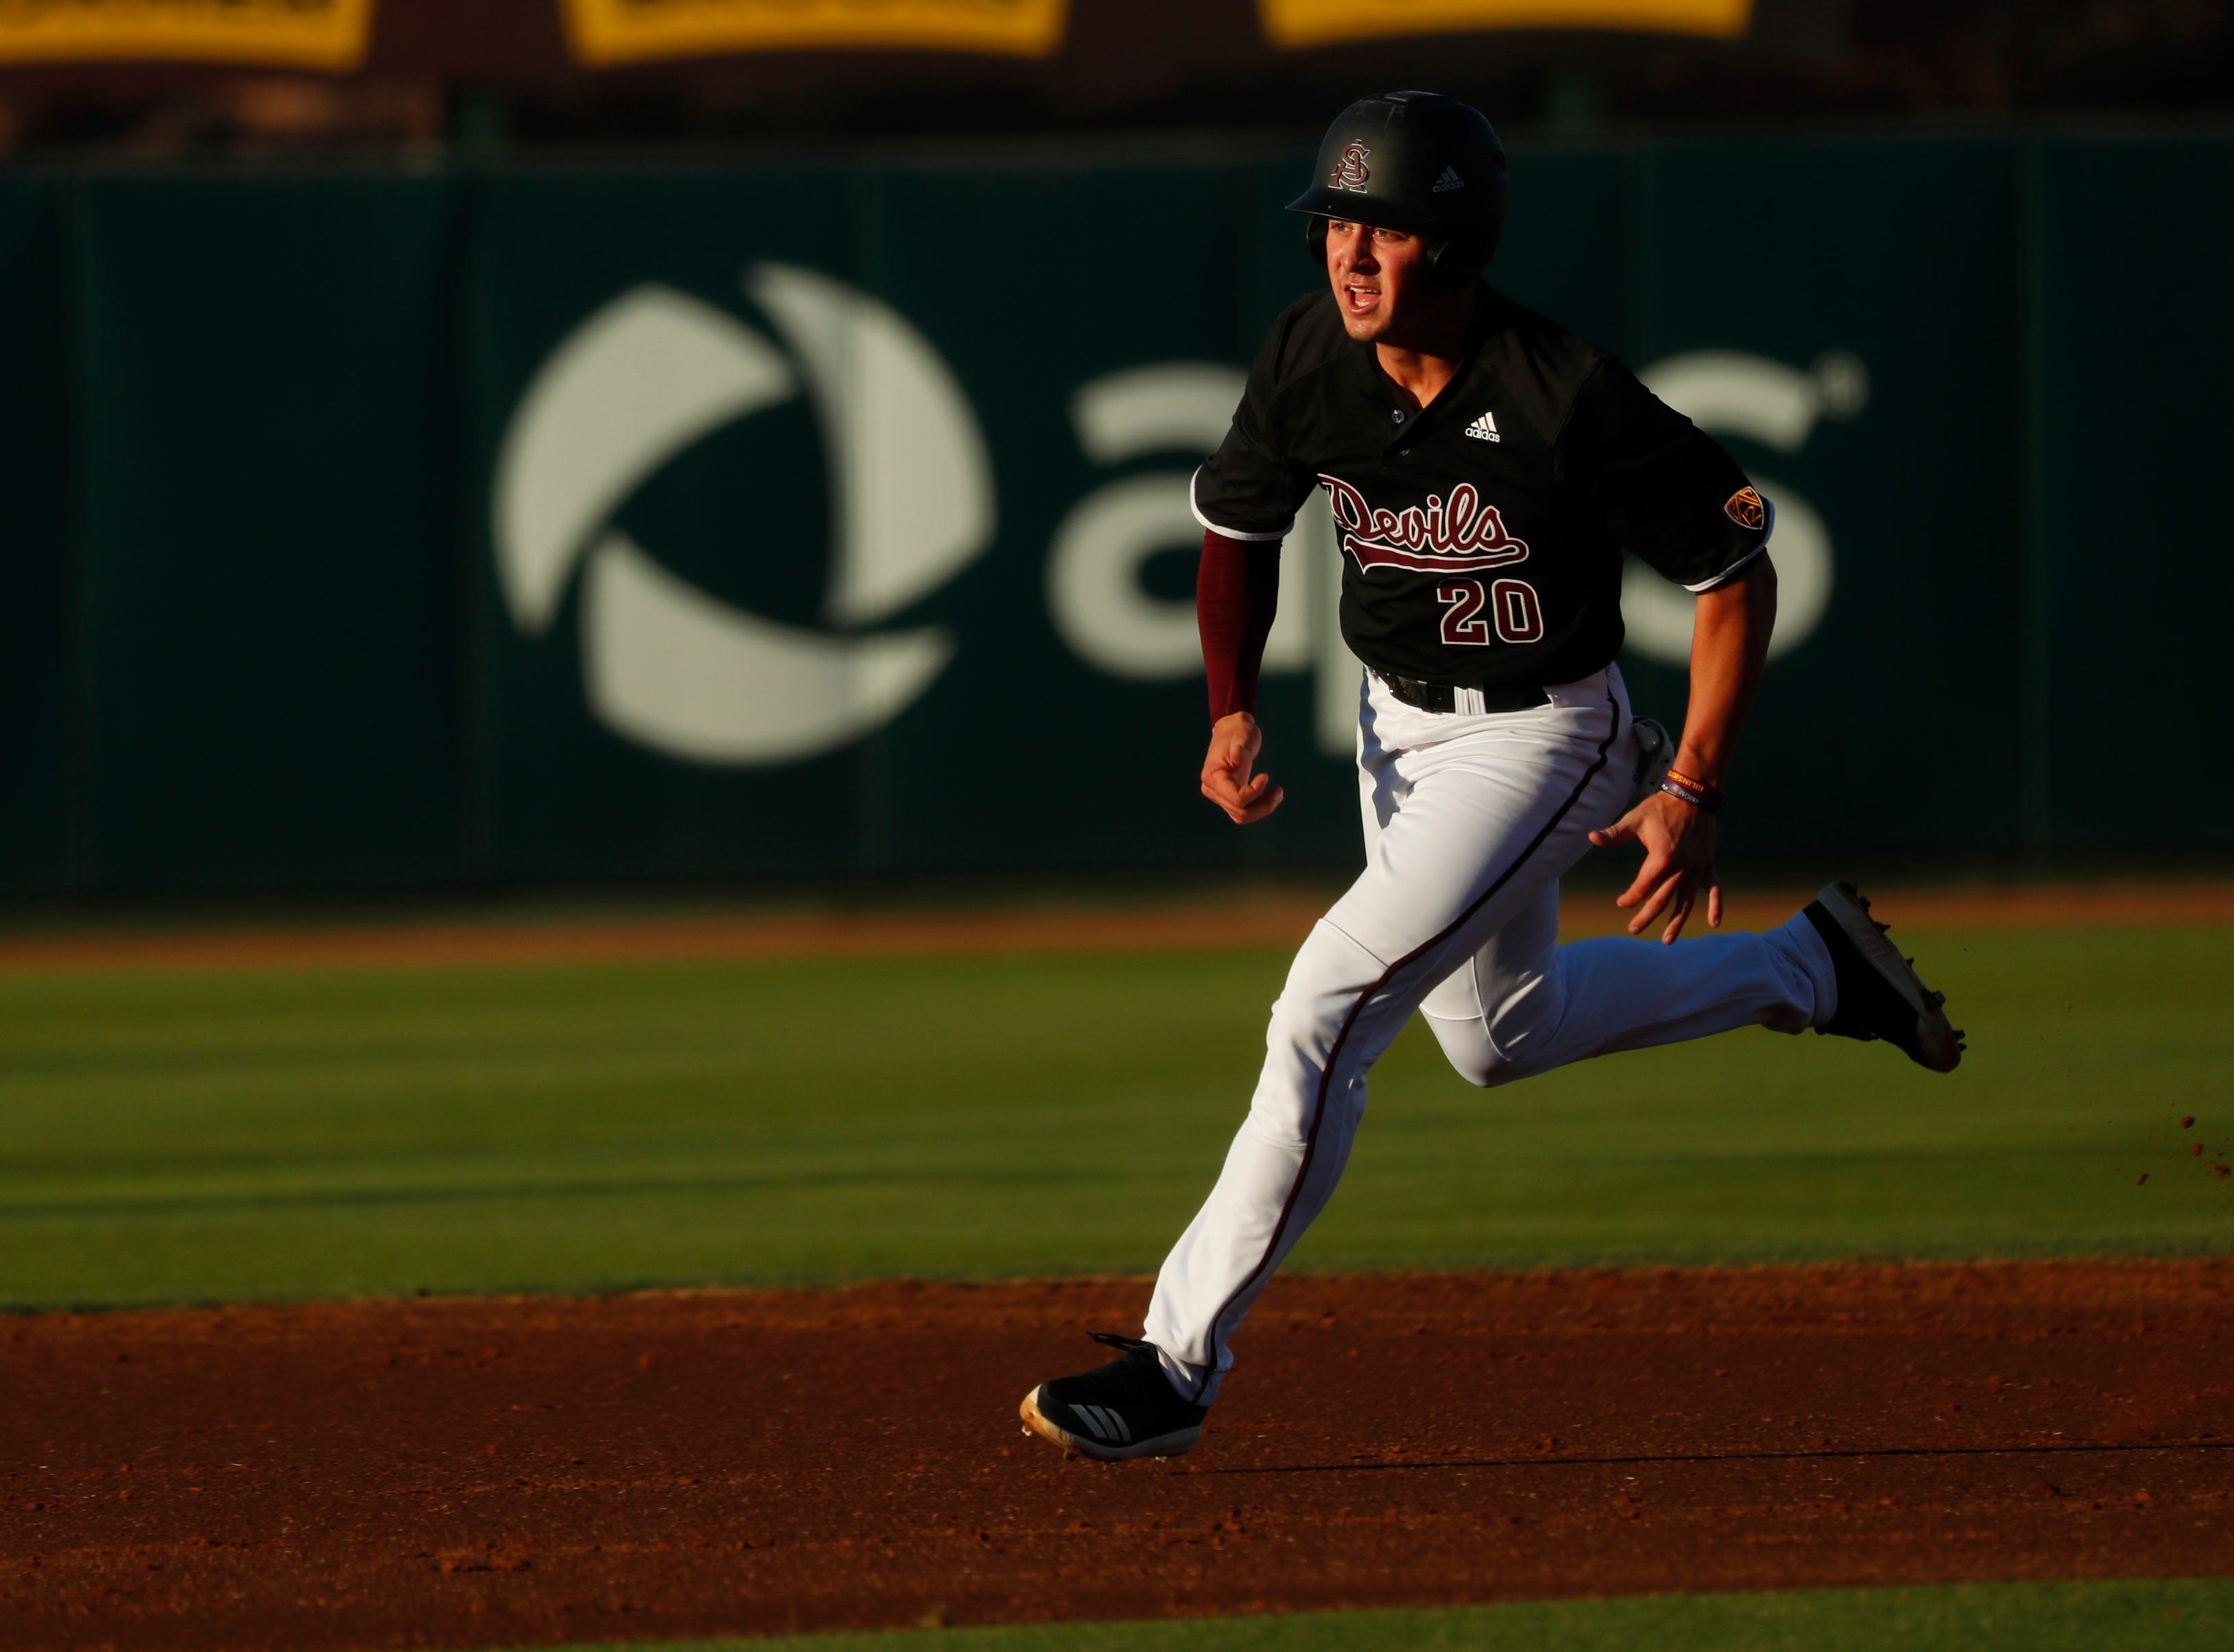 ASU's Spencer Torkelson (20) comes to third base against Stanford at Phoenix Municipal Stadium in Phoenix, Ariz. on May 23, 2019.